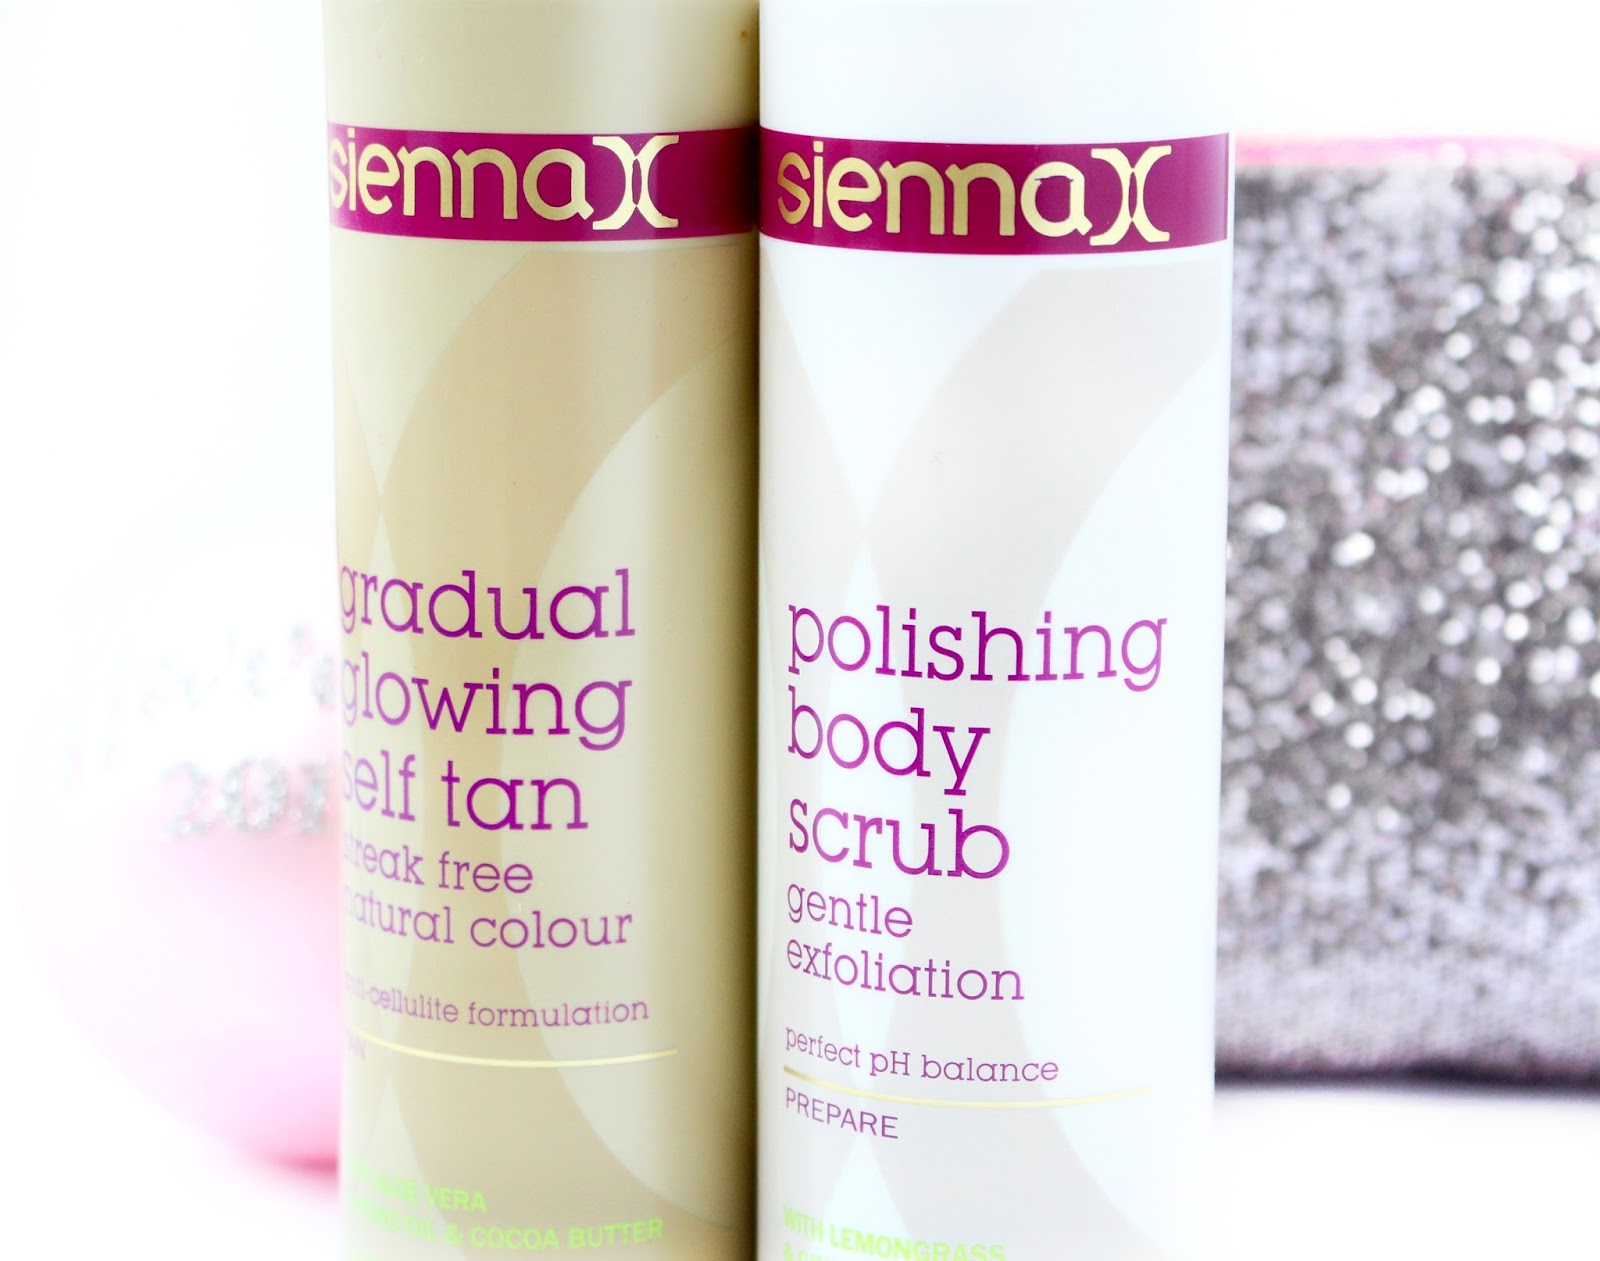 Sienna X Gradual Glowing Self Tan Review